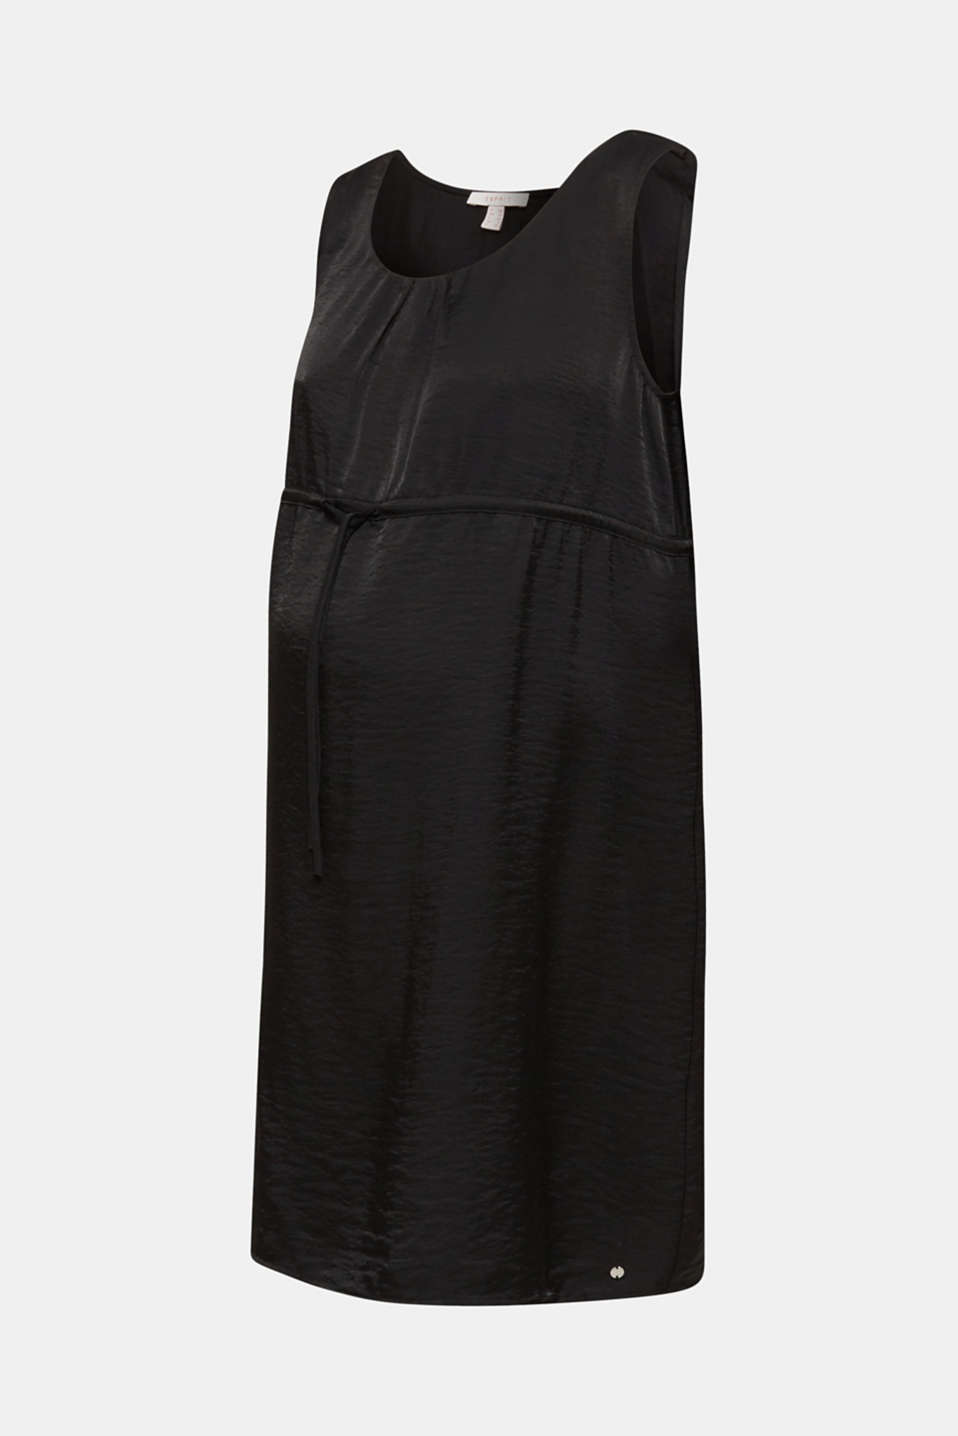 Woven dress with drawstring, LCBLACK, detail image number 5